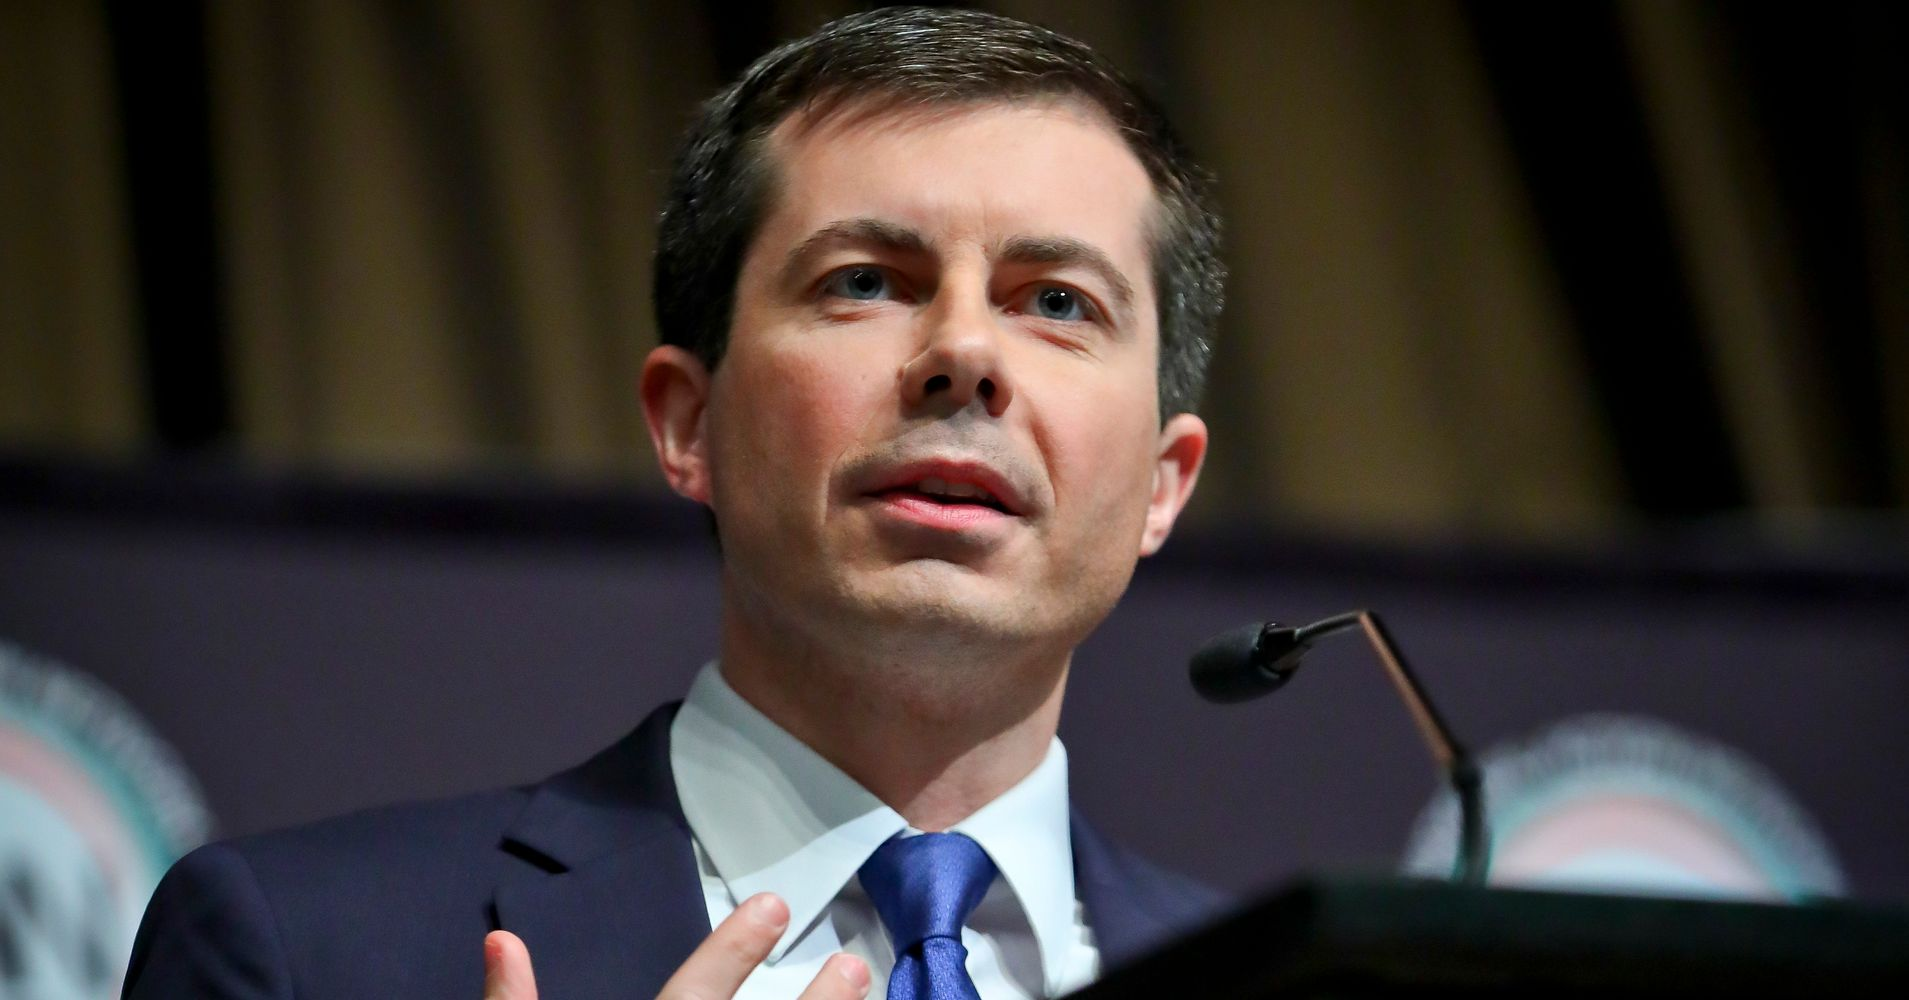 Pete Buttigieg Formally Announces 2020 Presidential Run